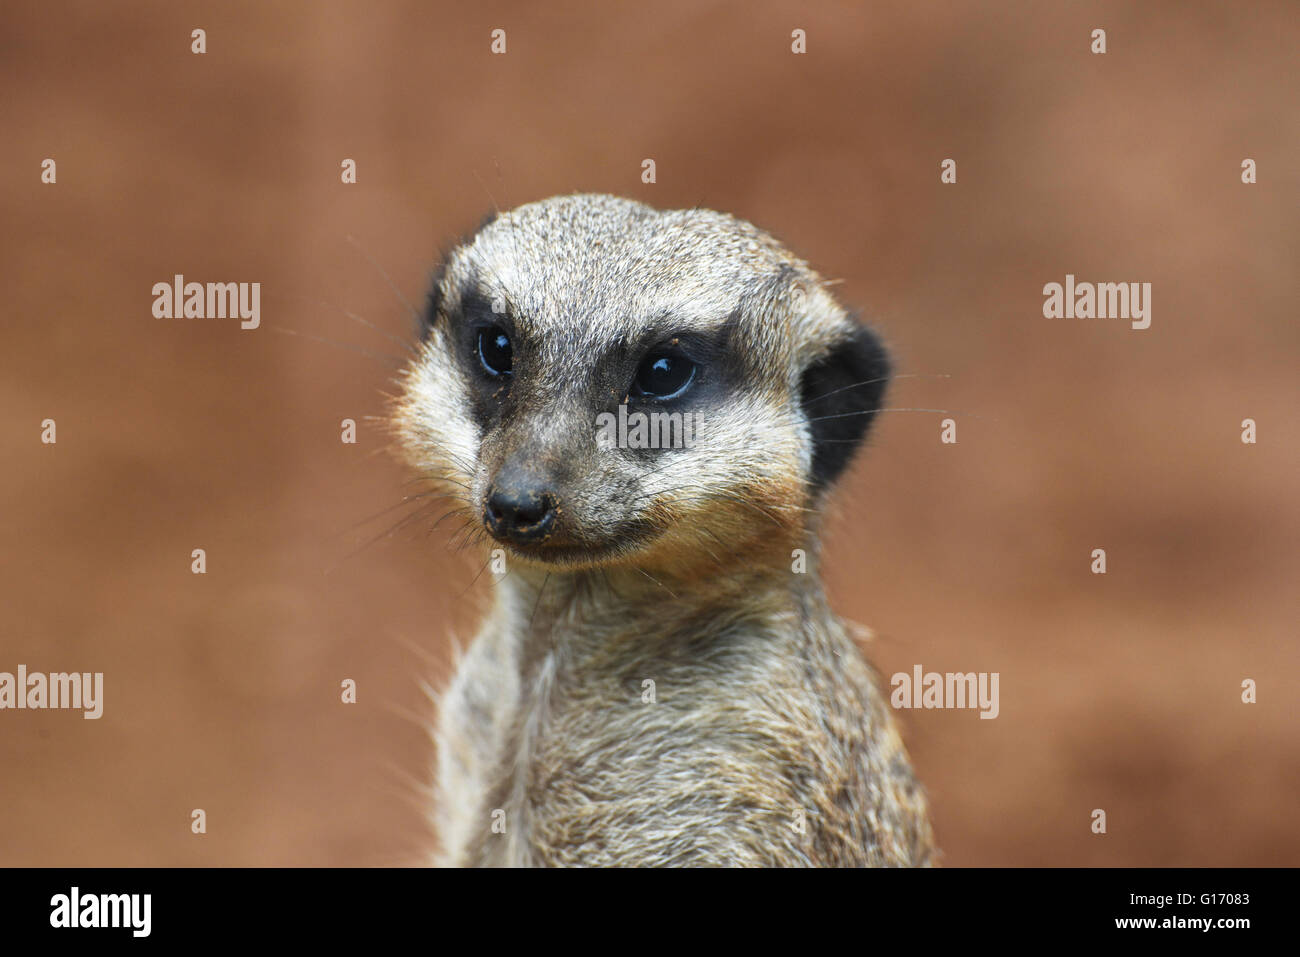 Close-up of the meerkat - Stock Image